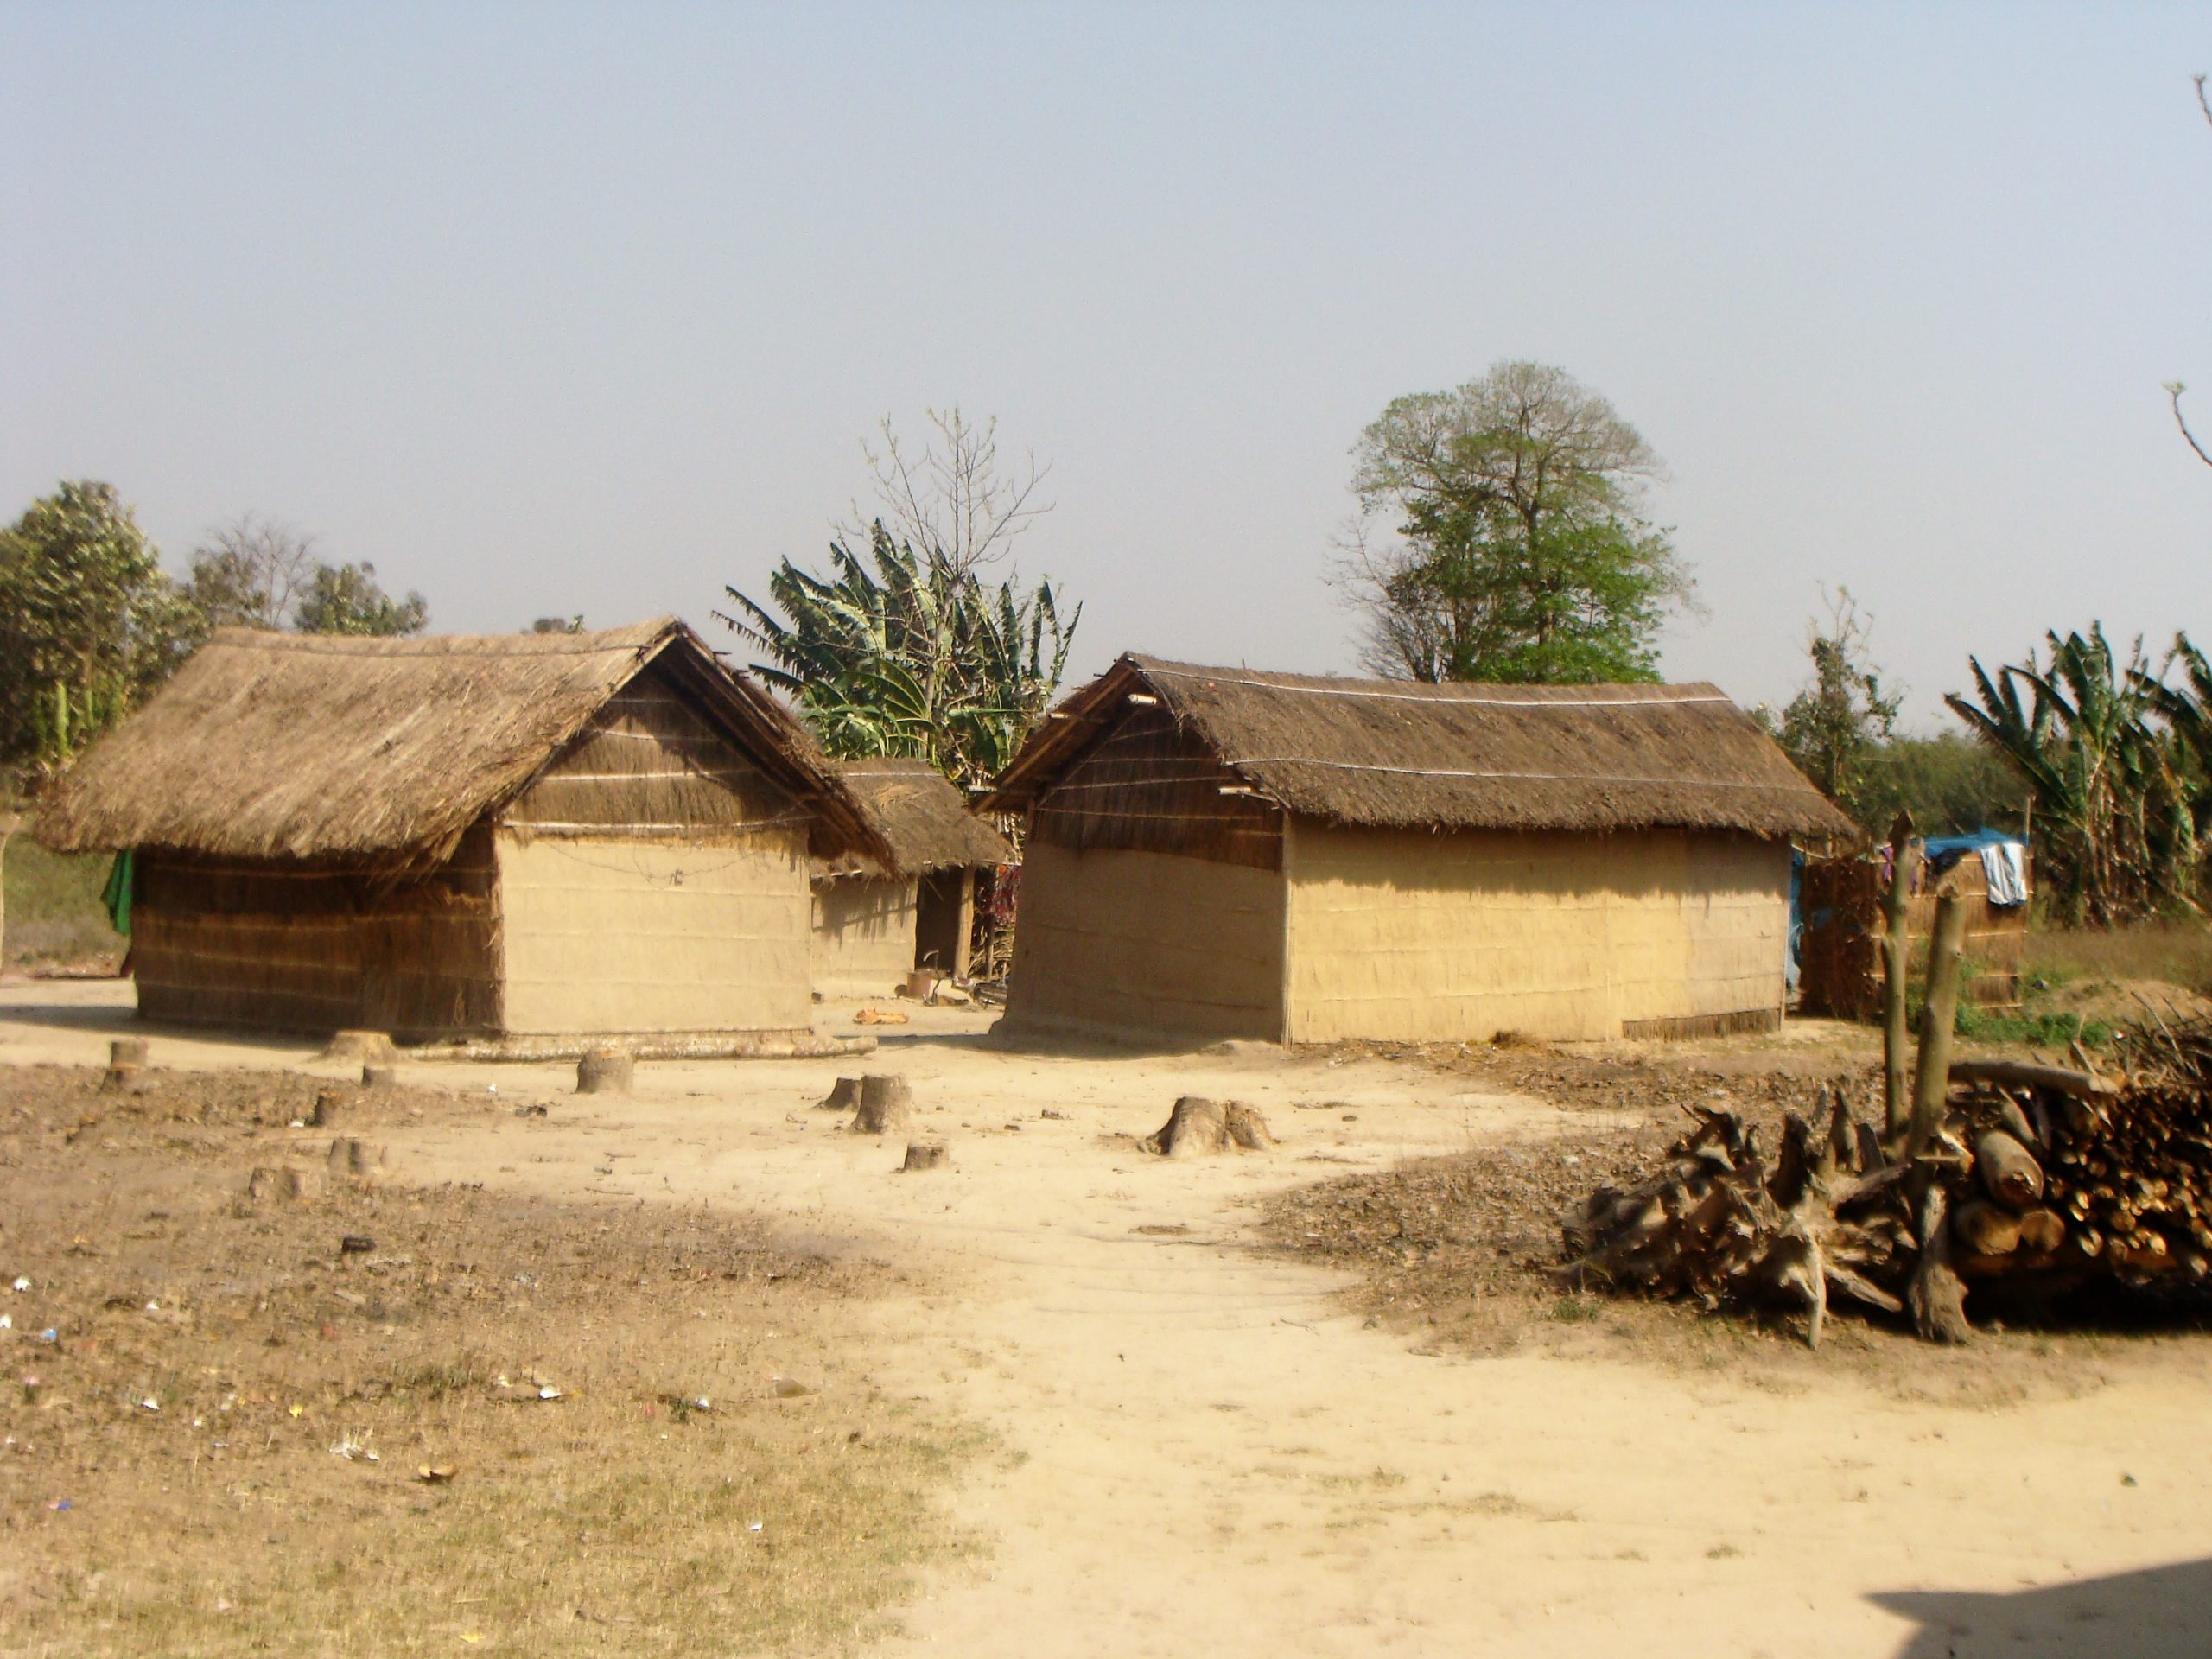 Huts in village